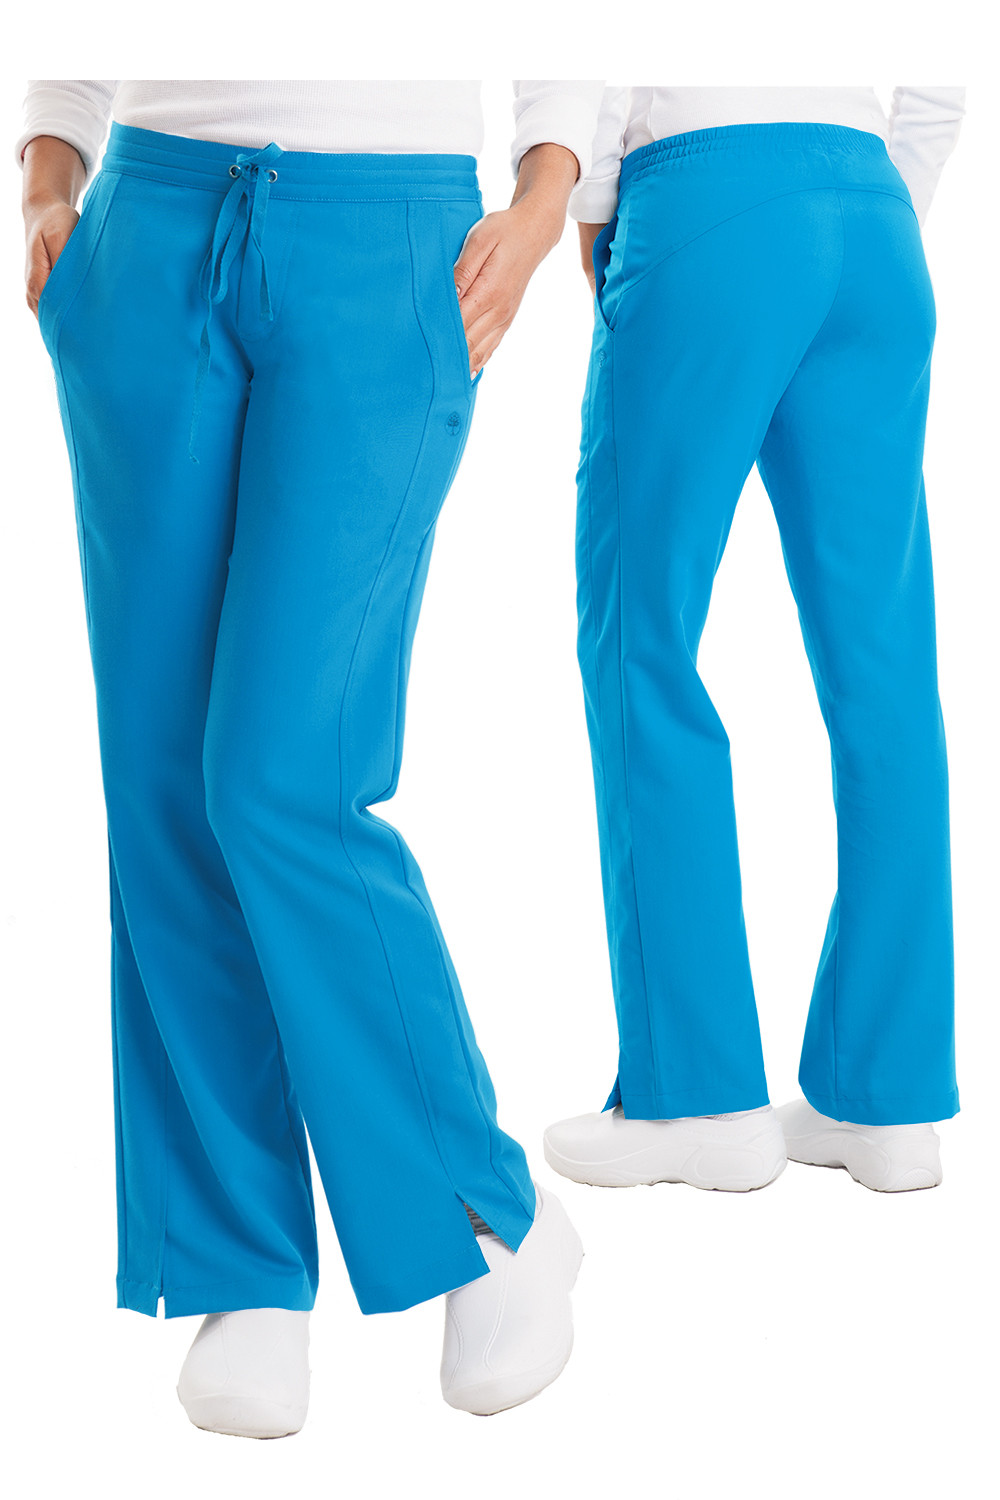 hospital medical scrub pants